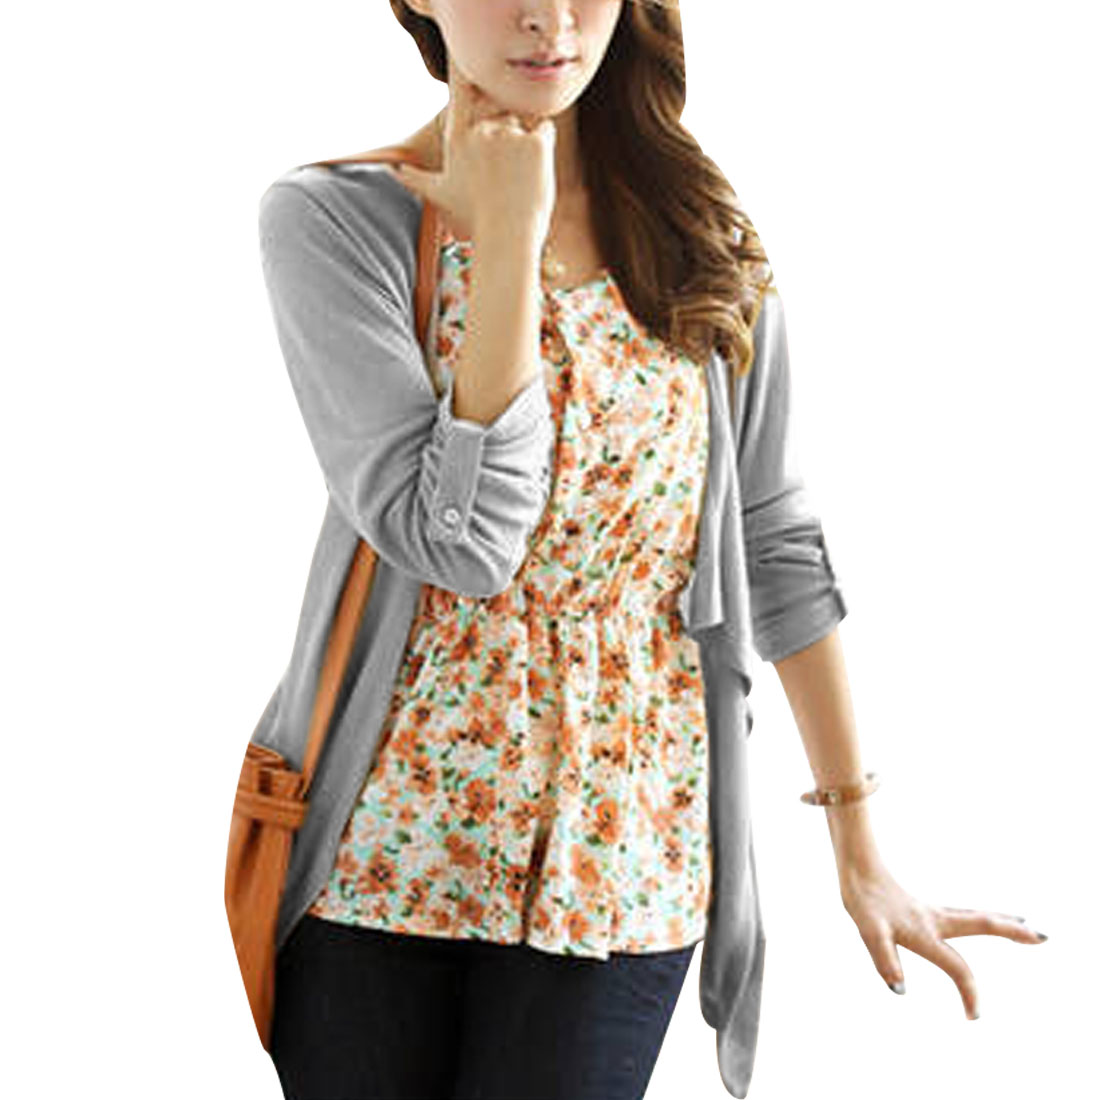 Women's Long Sleeves Scoop Neck Casual Pullover Blouse (Size XS / 2)